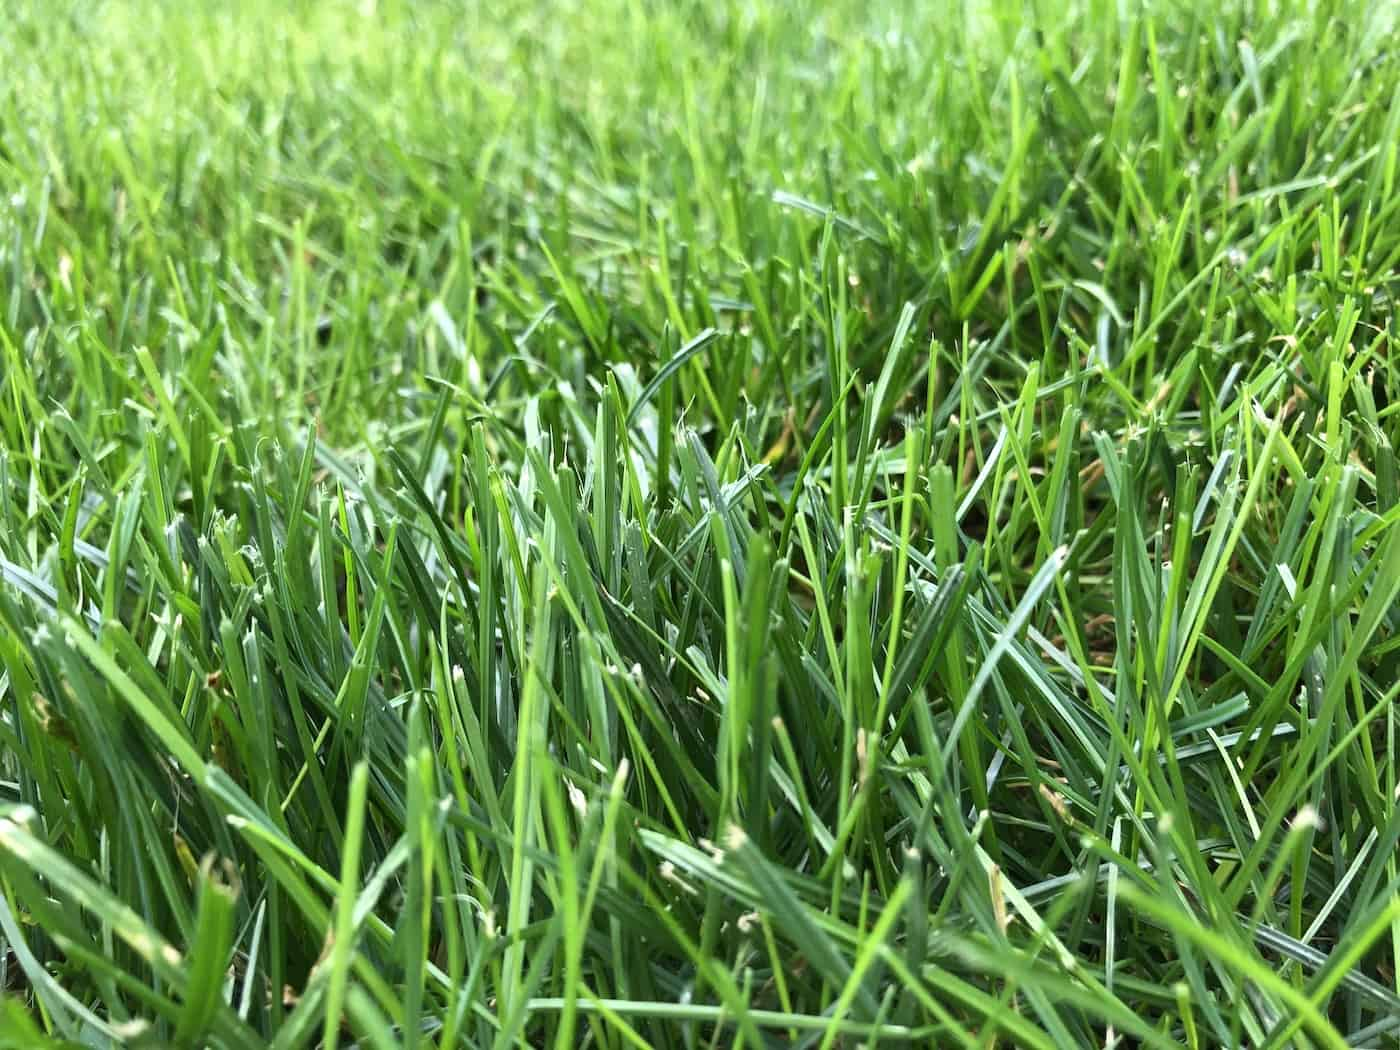 Organic Lawn Fertilizer A Homeowner S Guide To Natural Lawn Grass Food